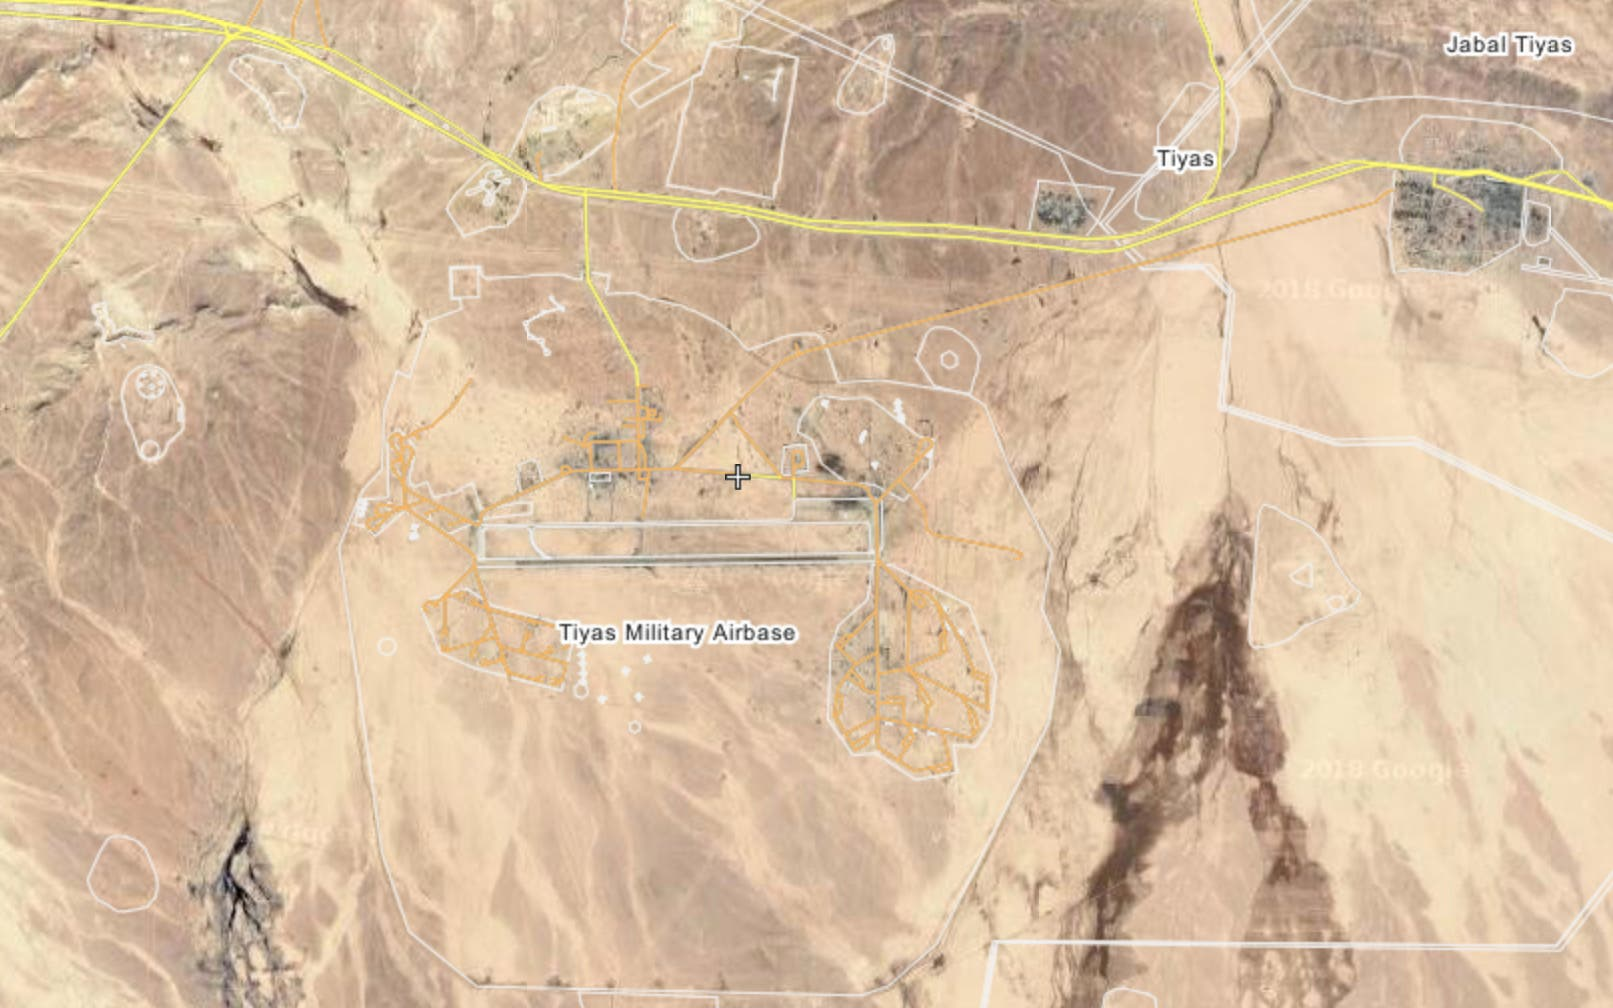 Map of the Tayfour airbase (also known as Althias, Tiyas or T-4)